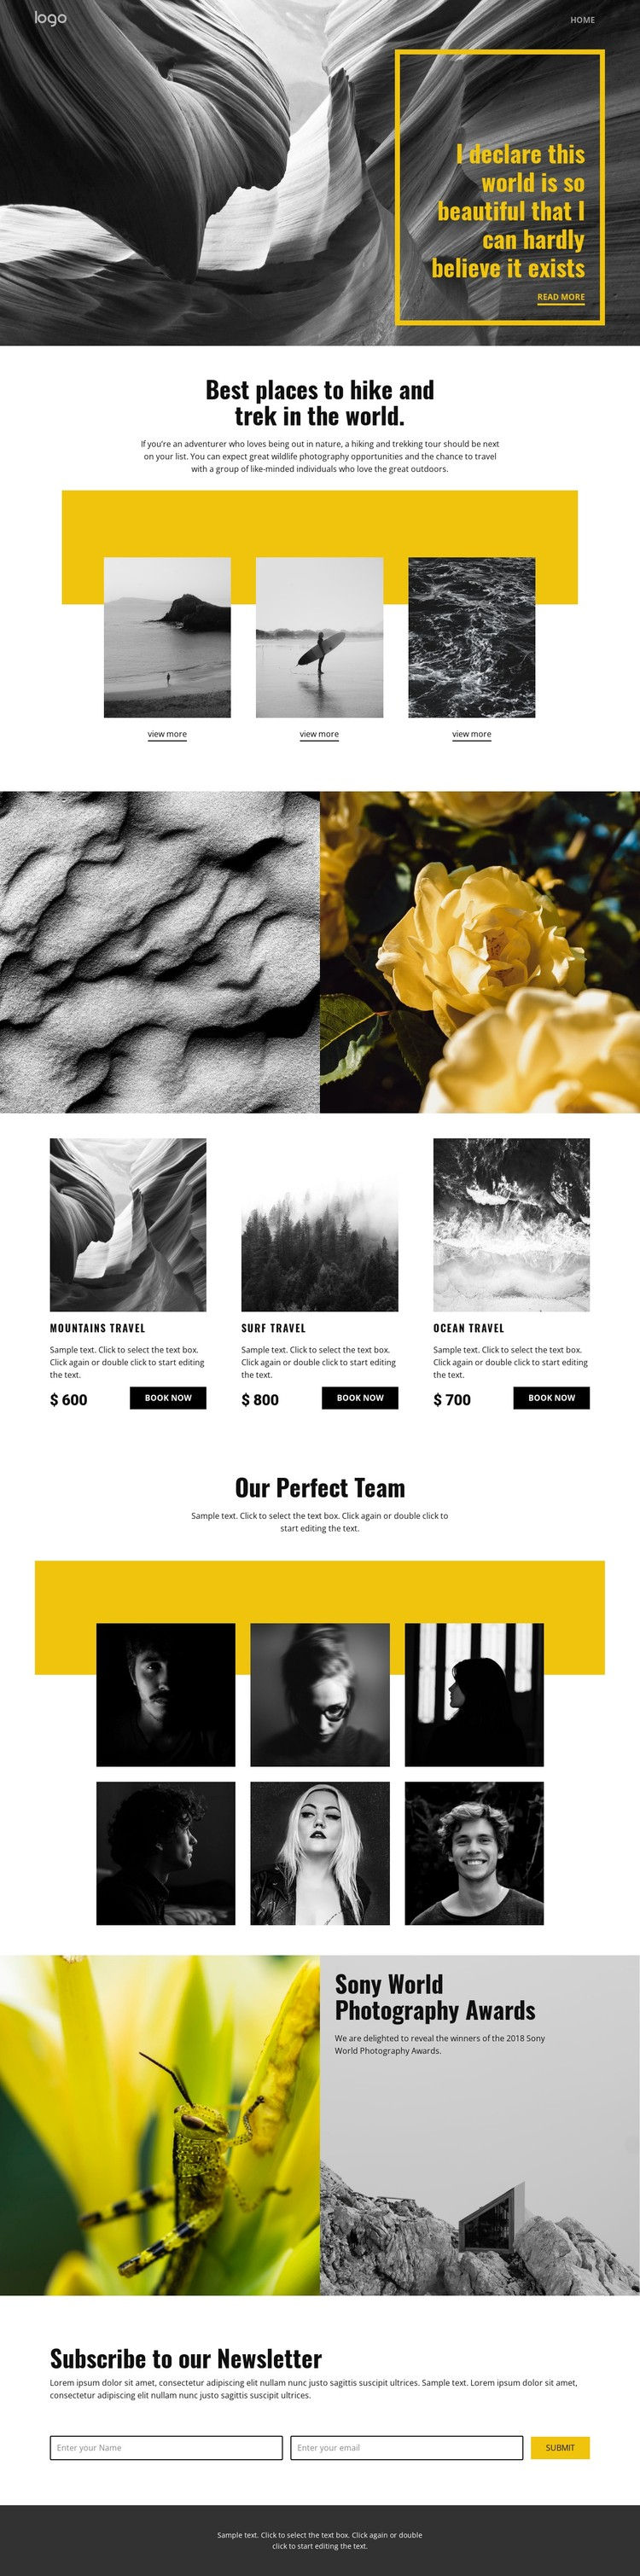 Best world places for travel WordPress Template